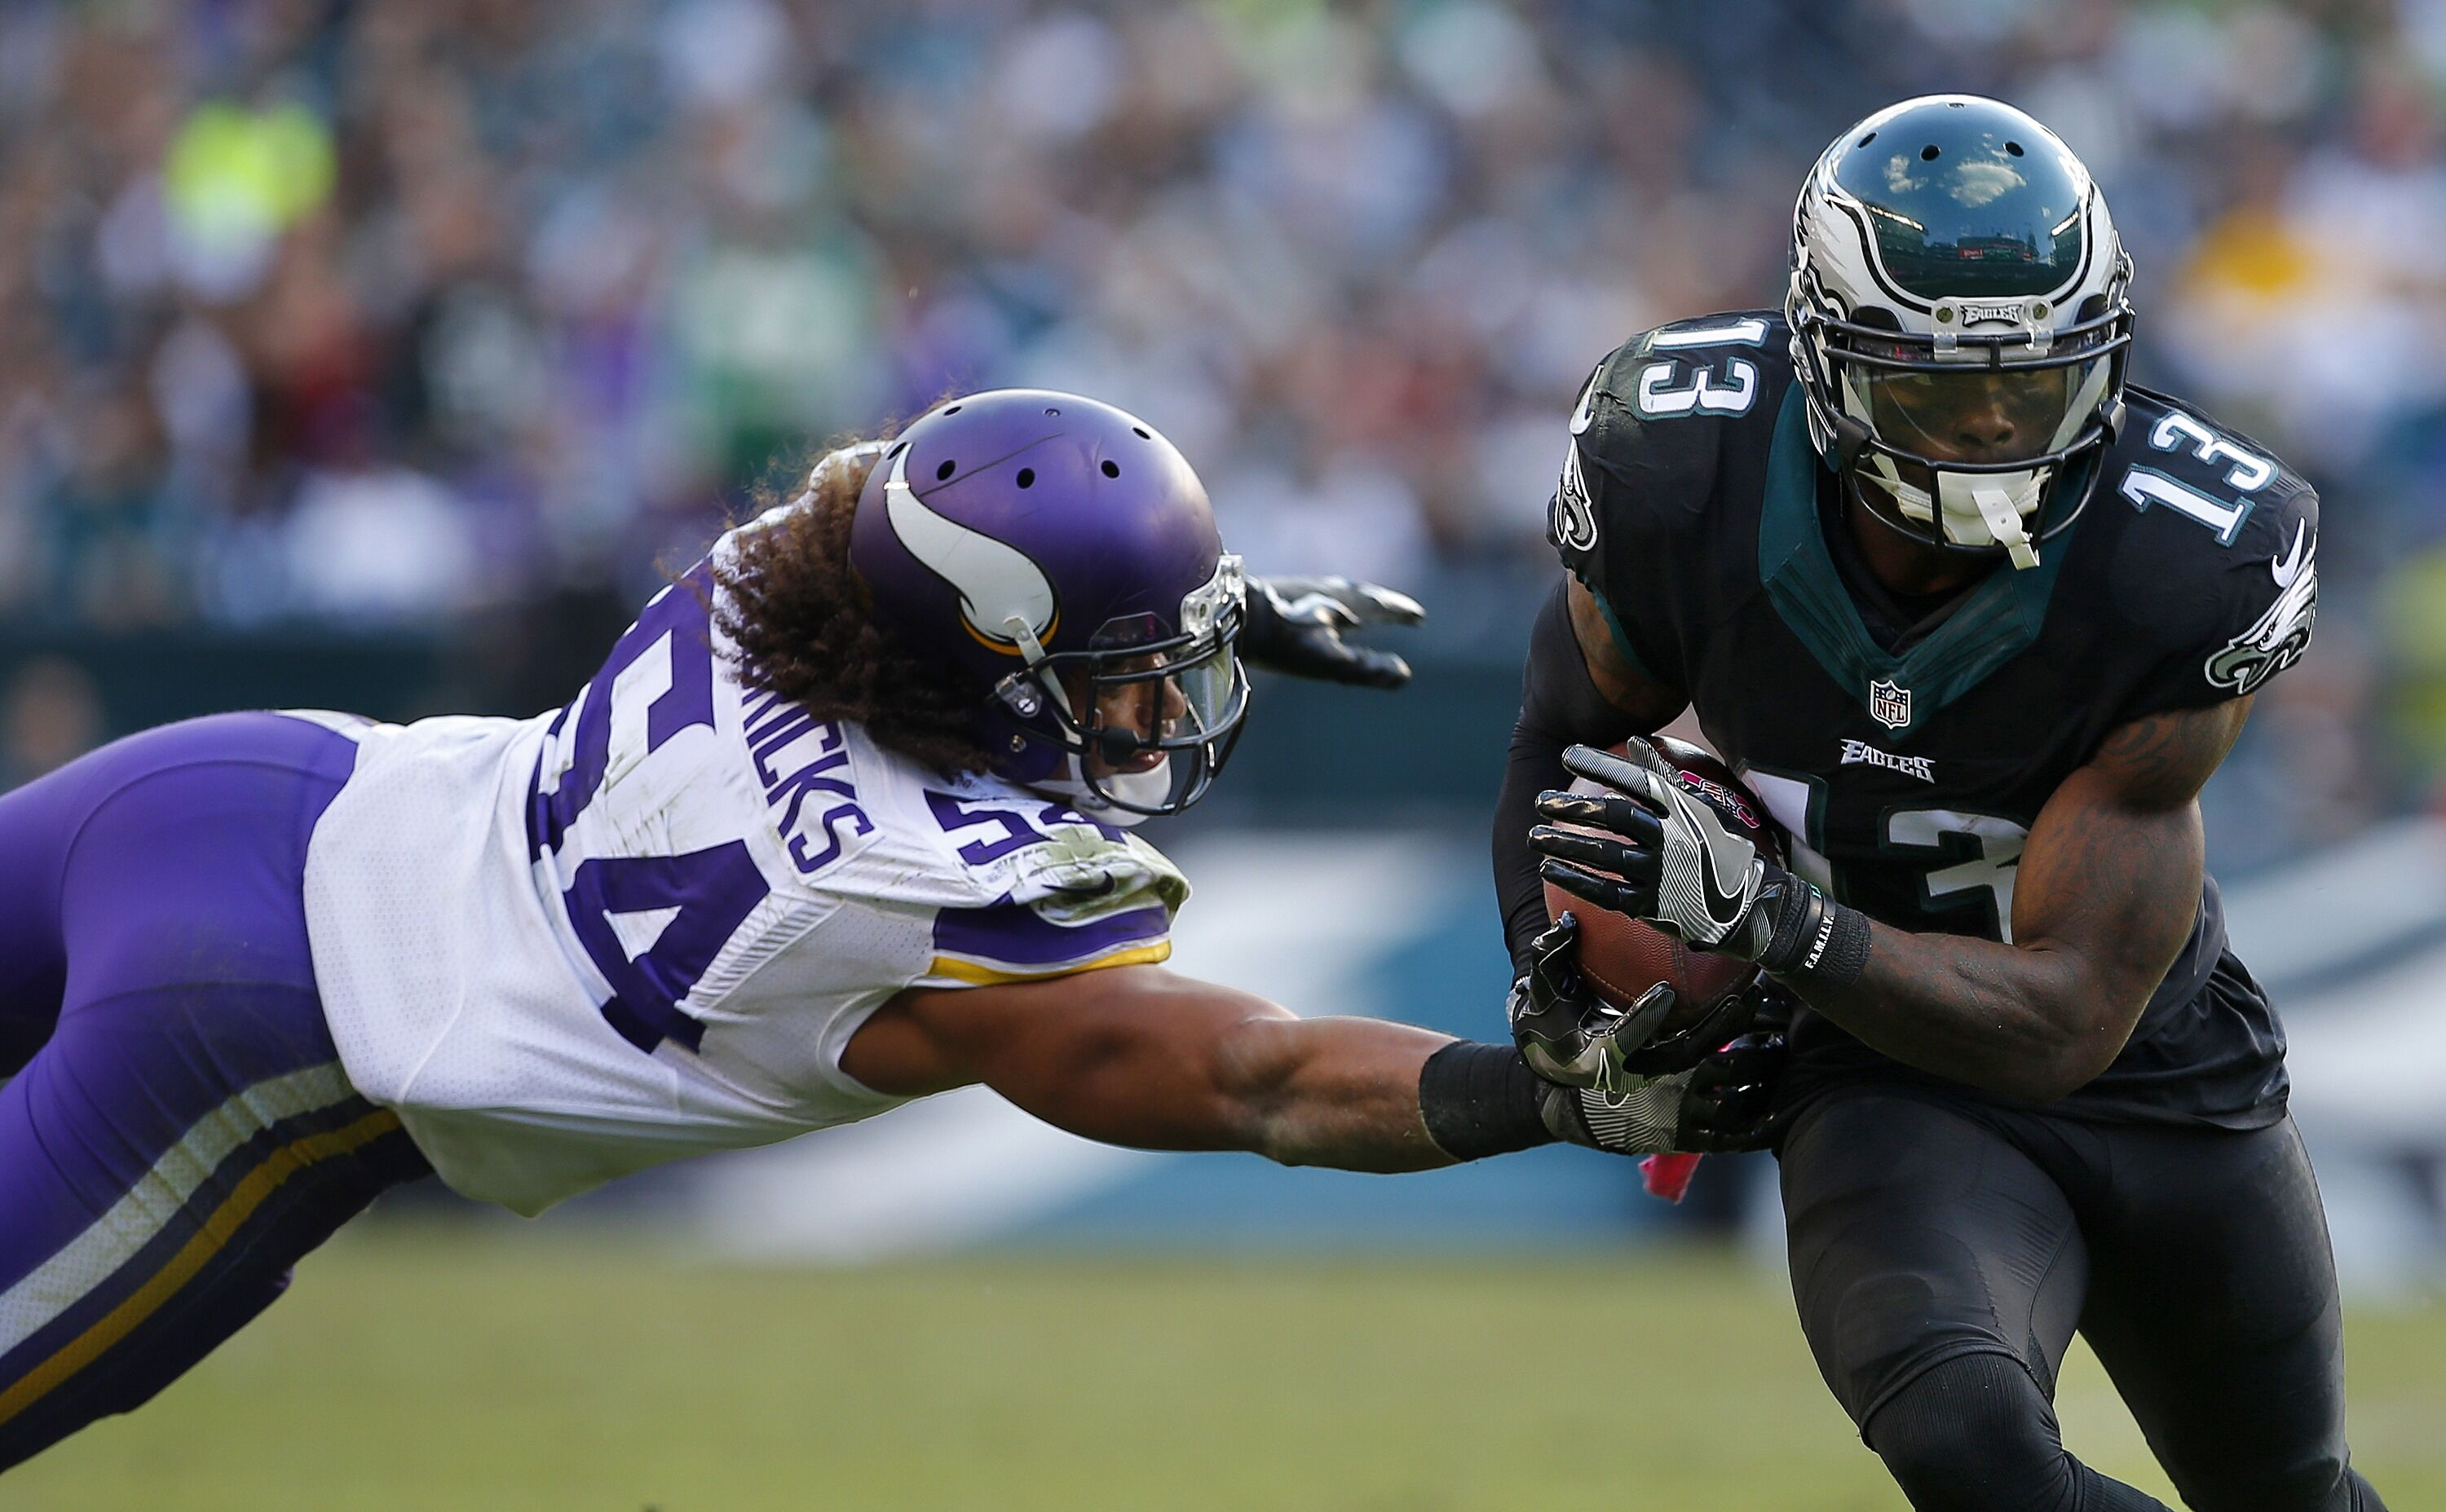 617644522-minnesota-vikings-v-philadelphia-eagles.jpg